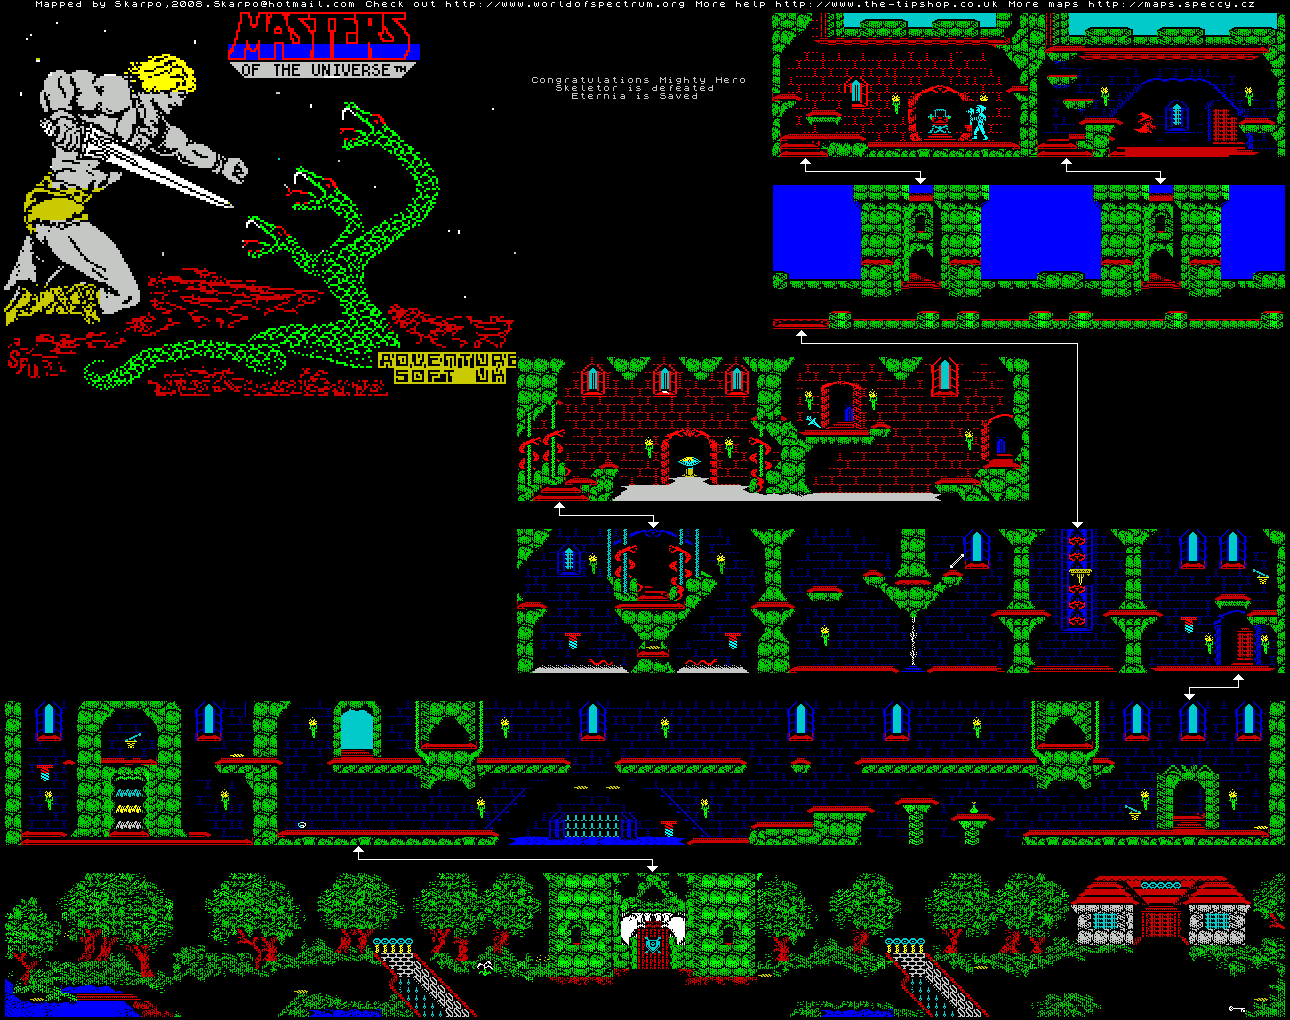 Masters of the Universe - The Arcade Game - The Map